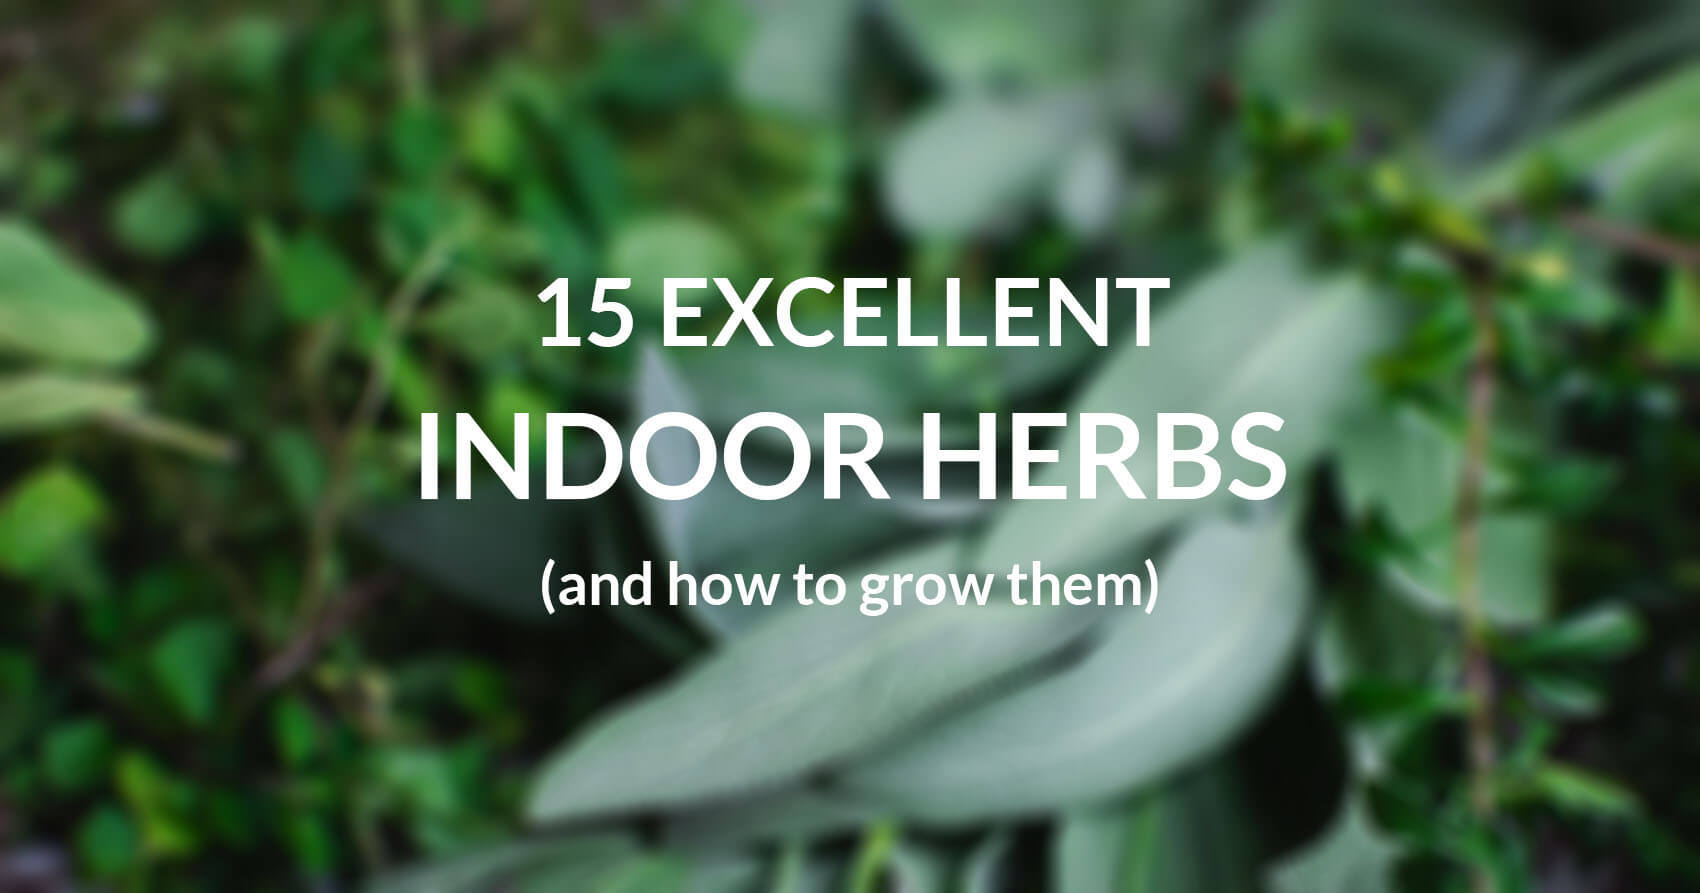 15 Excellent Herbs To Grow Indoors